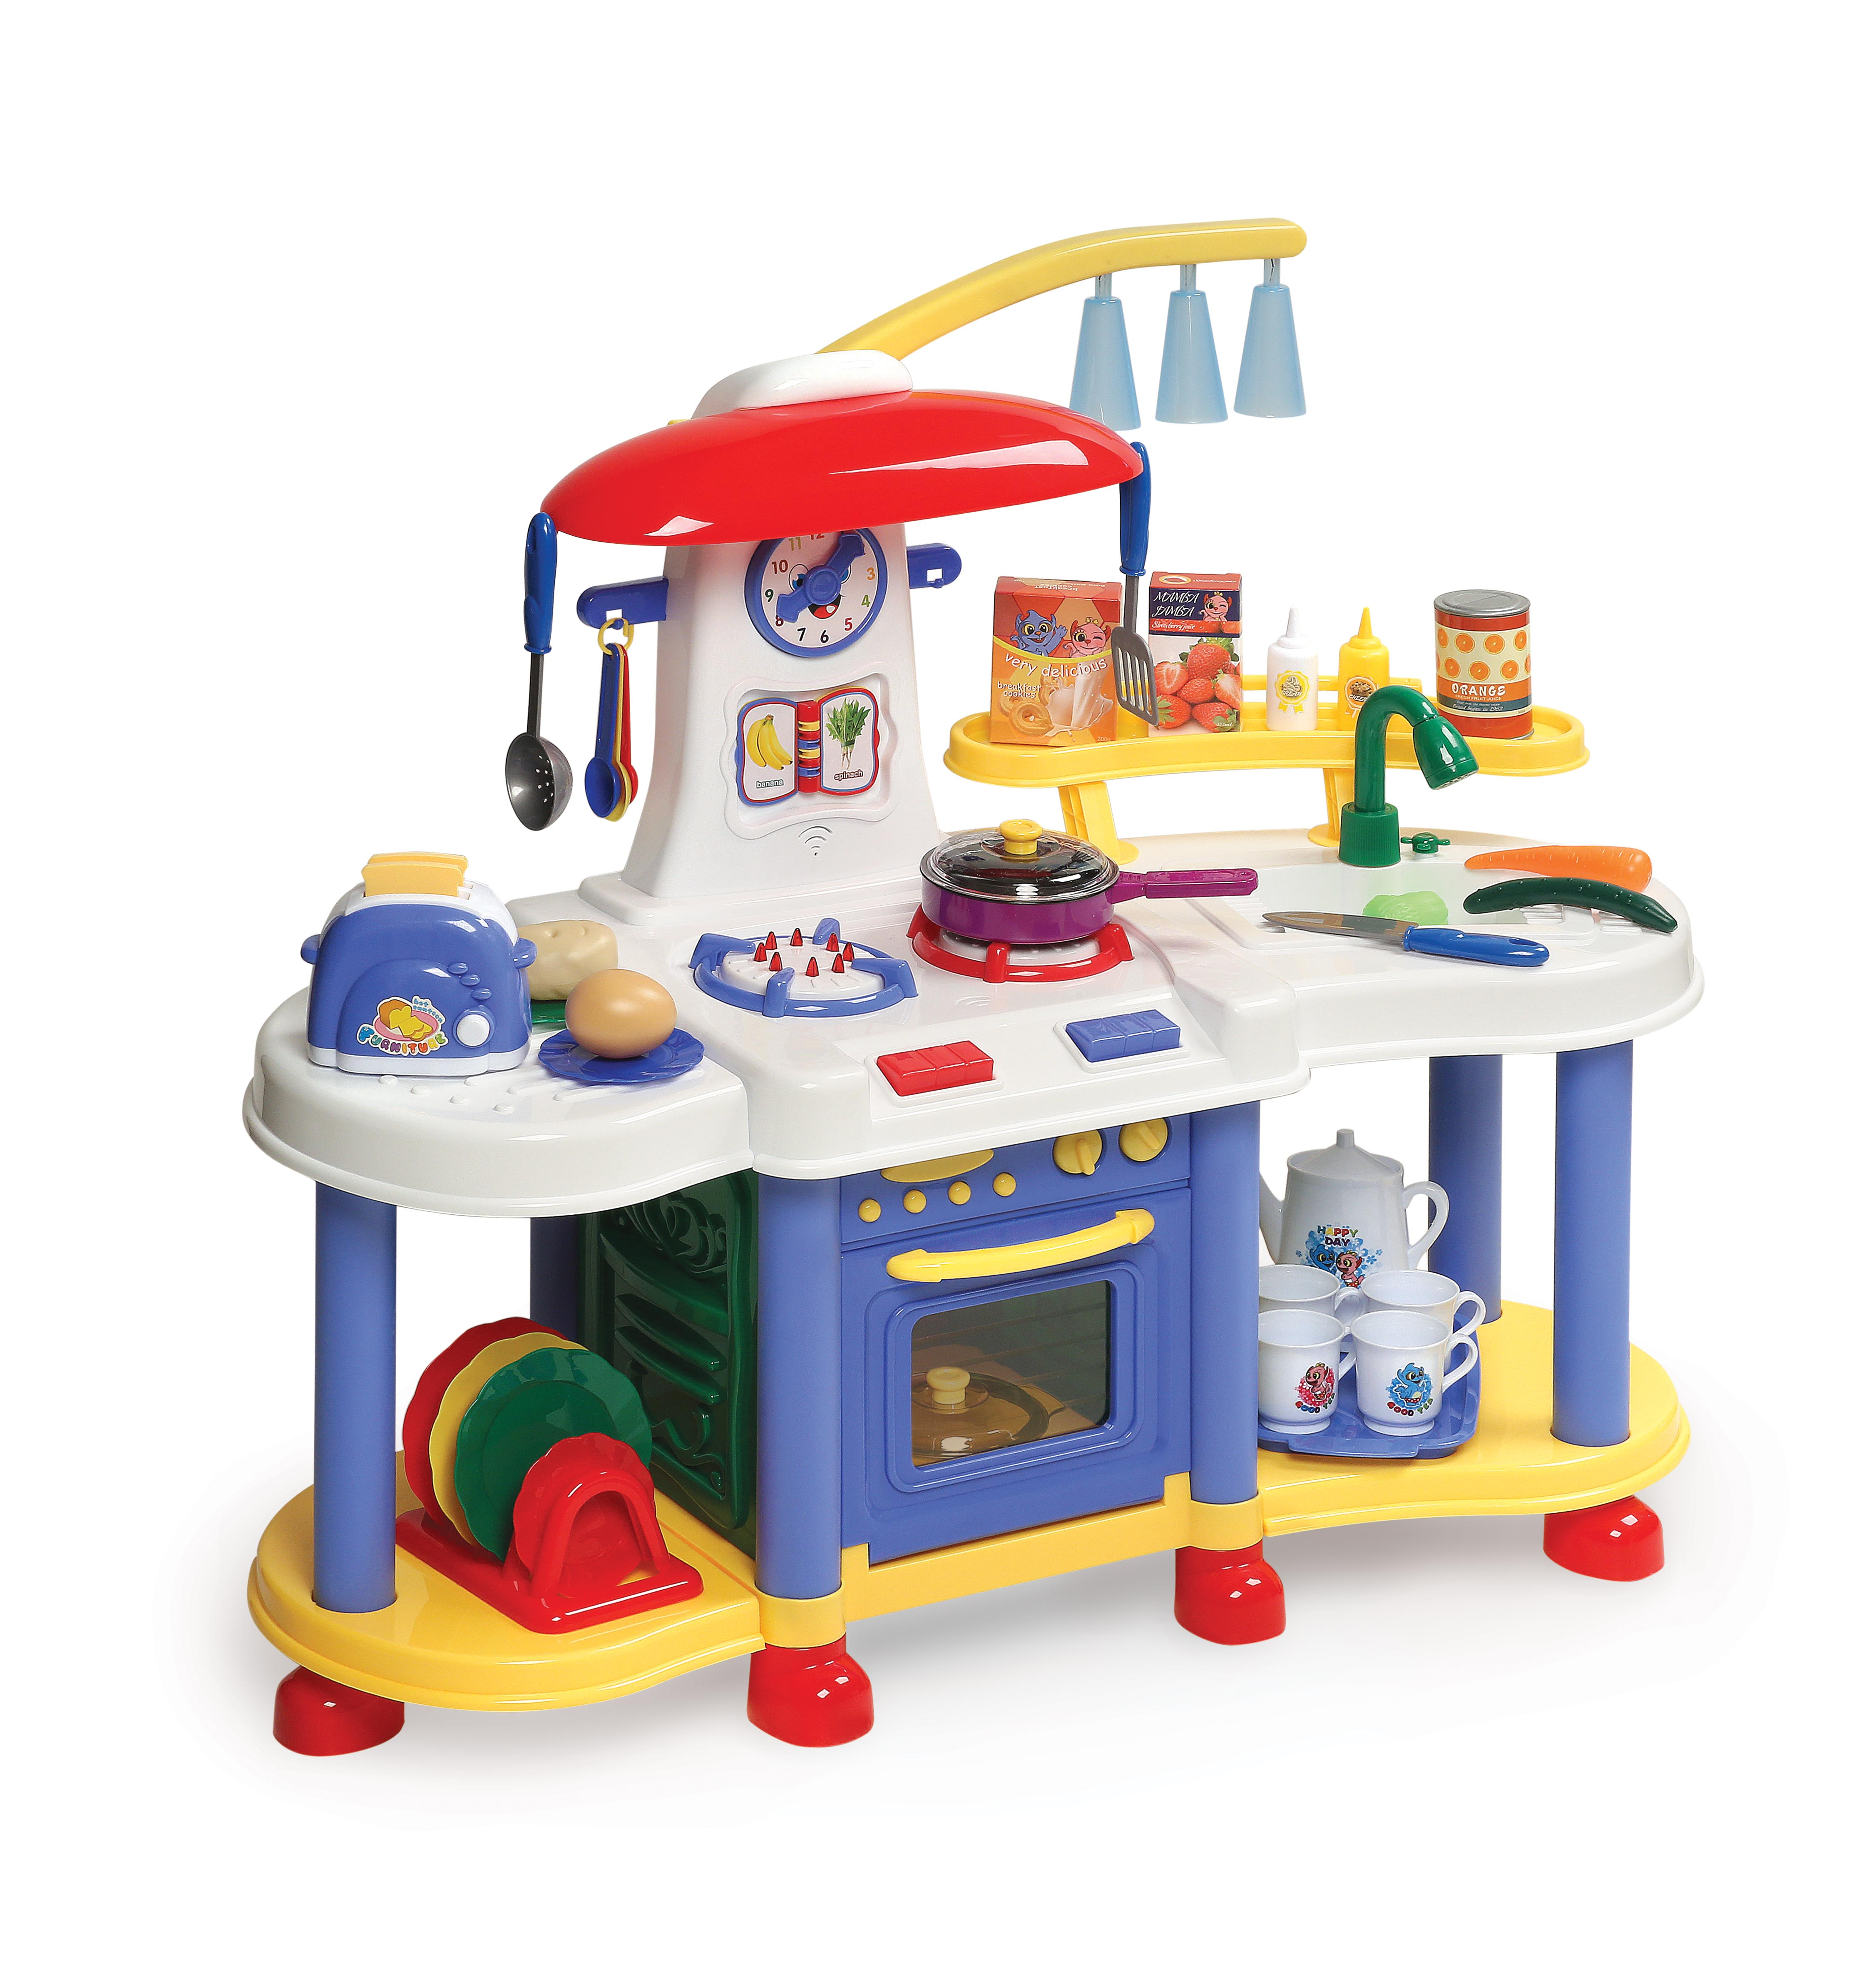 Badger Basket Super Electronic Play Kitchen with Accessories